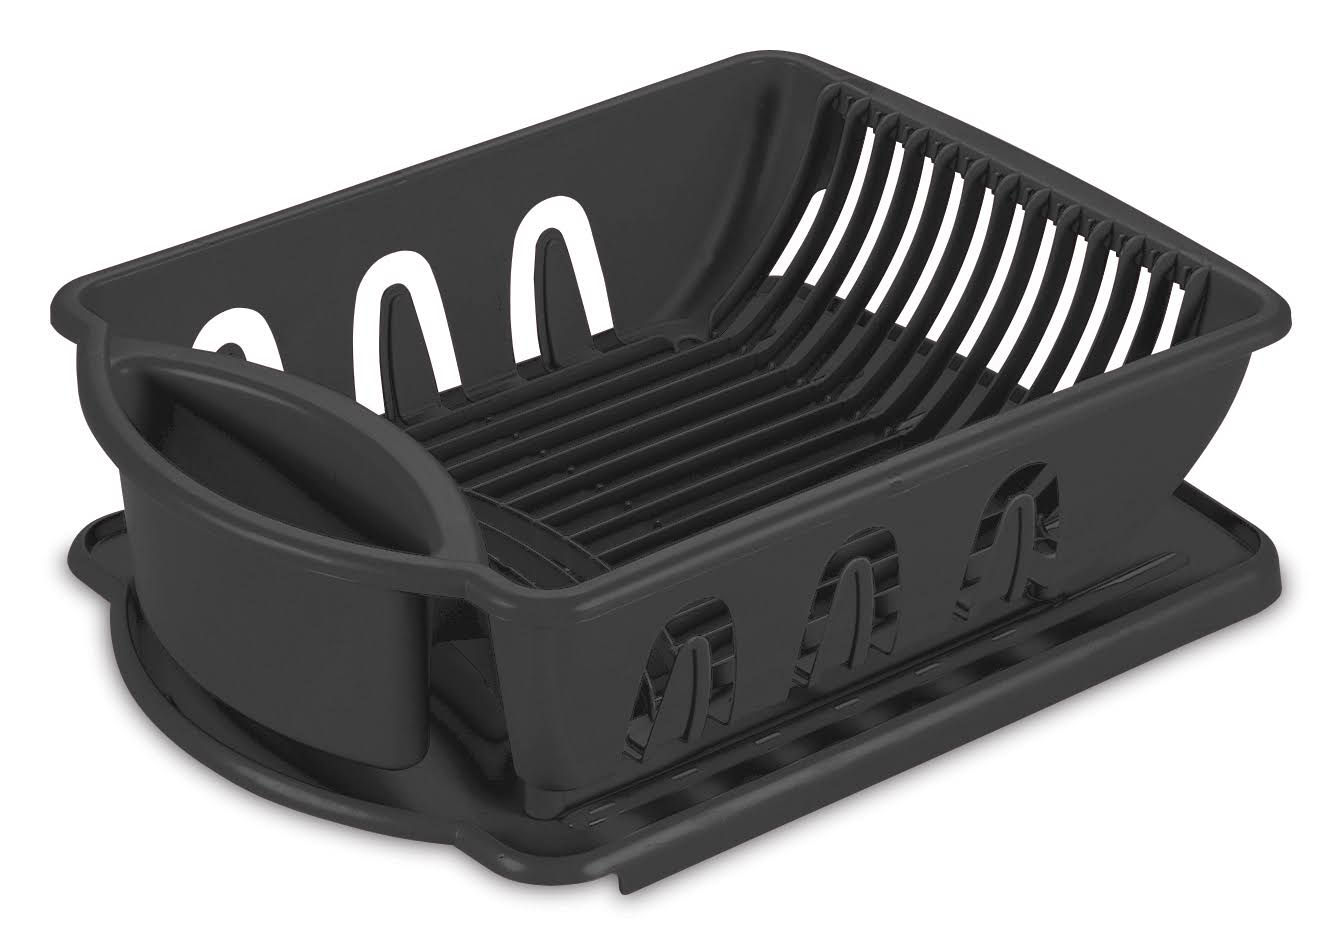 Sterlite Sink Dish Rack Drainer - Black, Medium